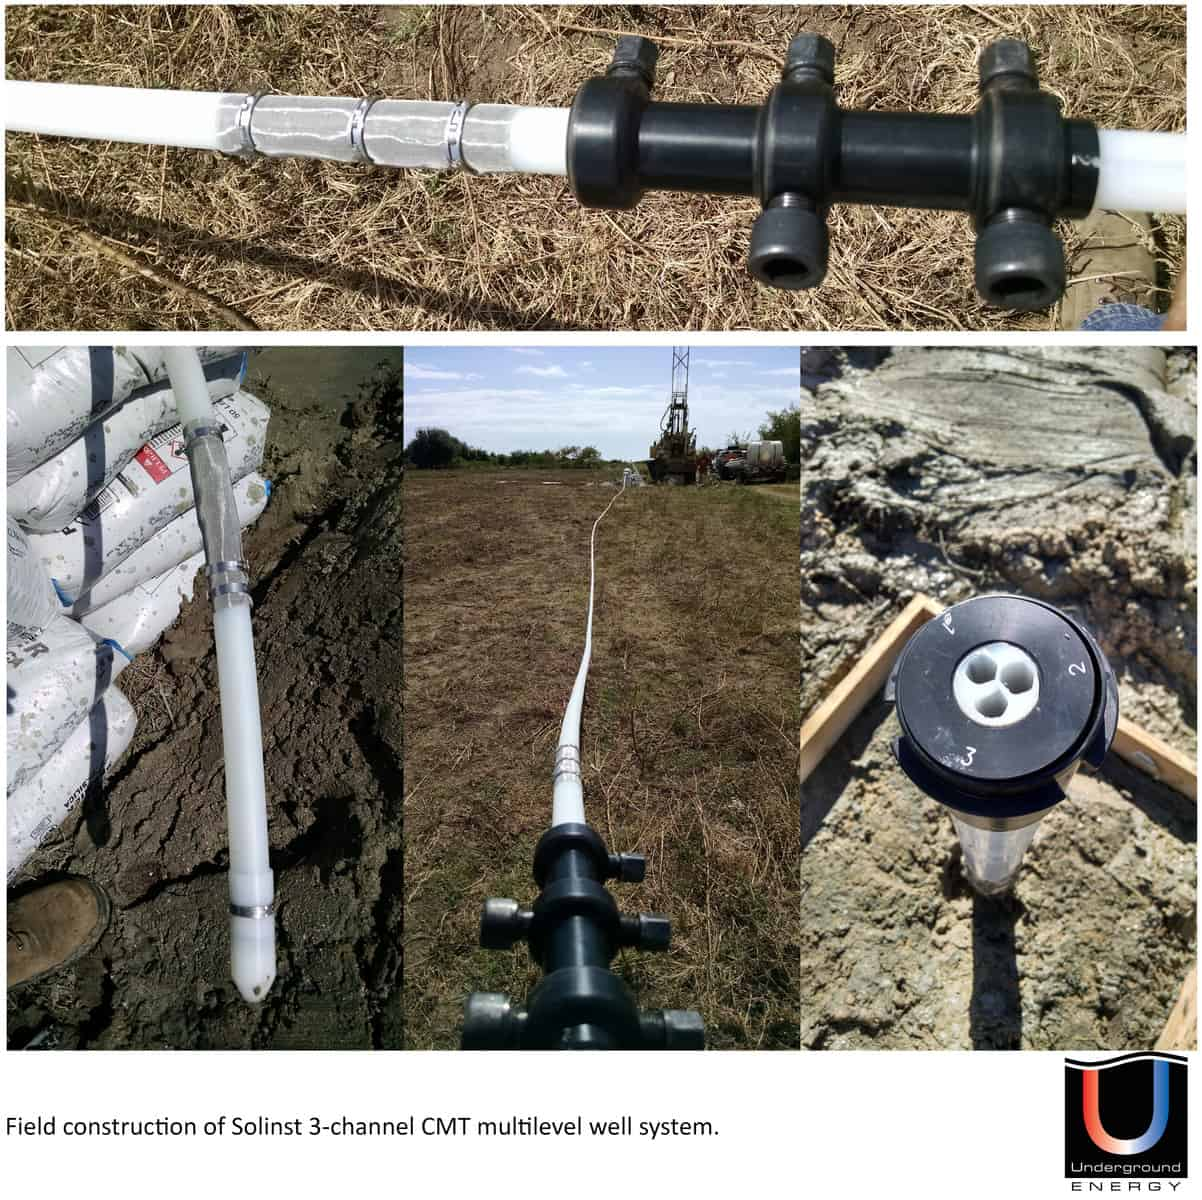 Solinst Continuous Multichannel Tubing CMT installation hydrogeology discrete level monitoring well geophysical borehole logging